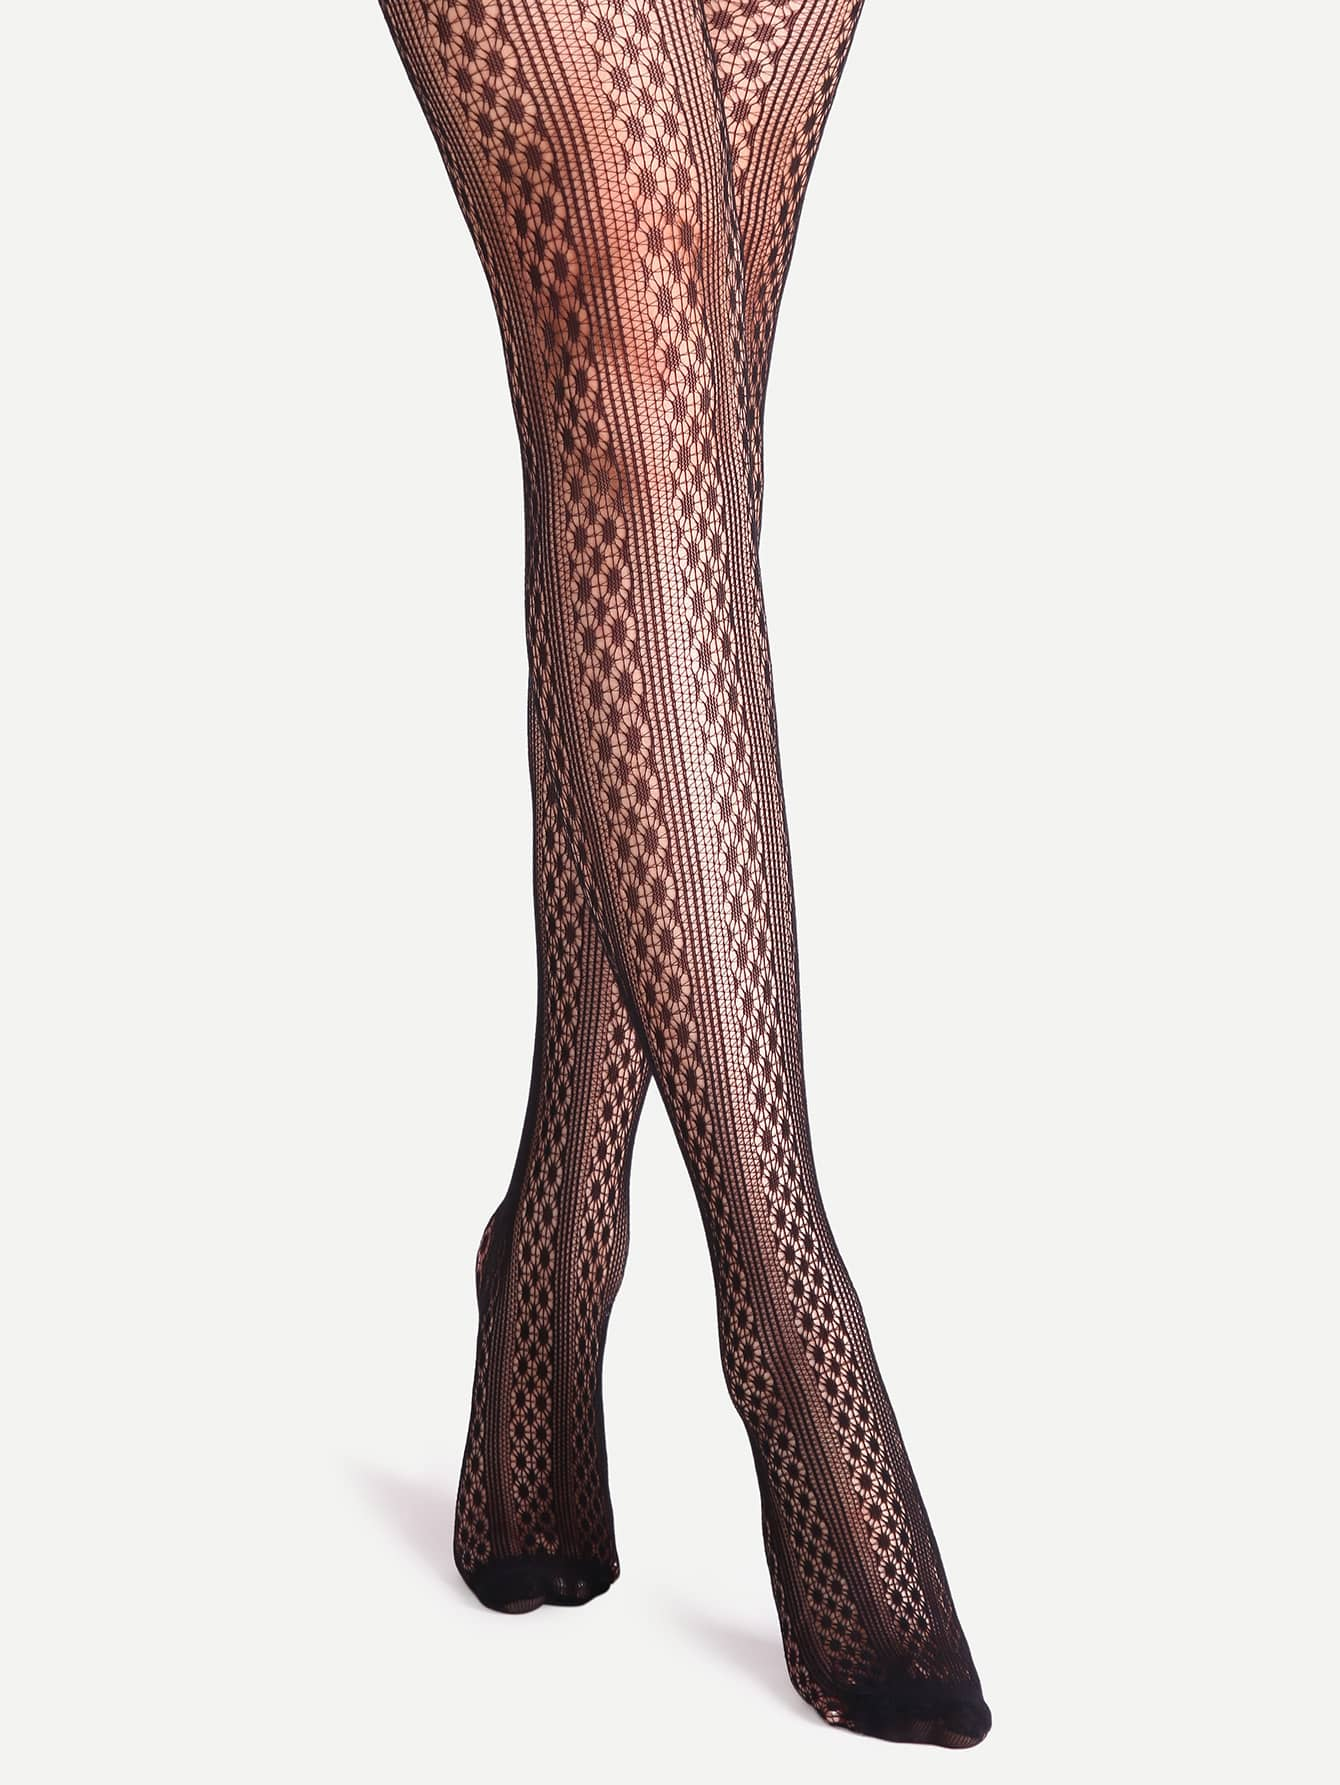 Black Floral Hollow Out Sheer Pantyhose StockingsBlack Floral Hollow Out Sheer Pantyhose Stockings<br><br>color: Black<br>size: one-size